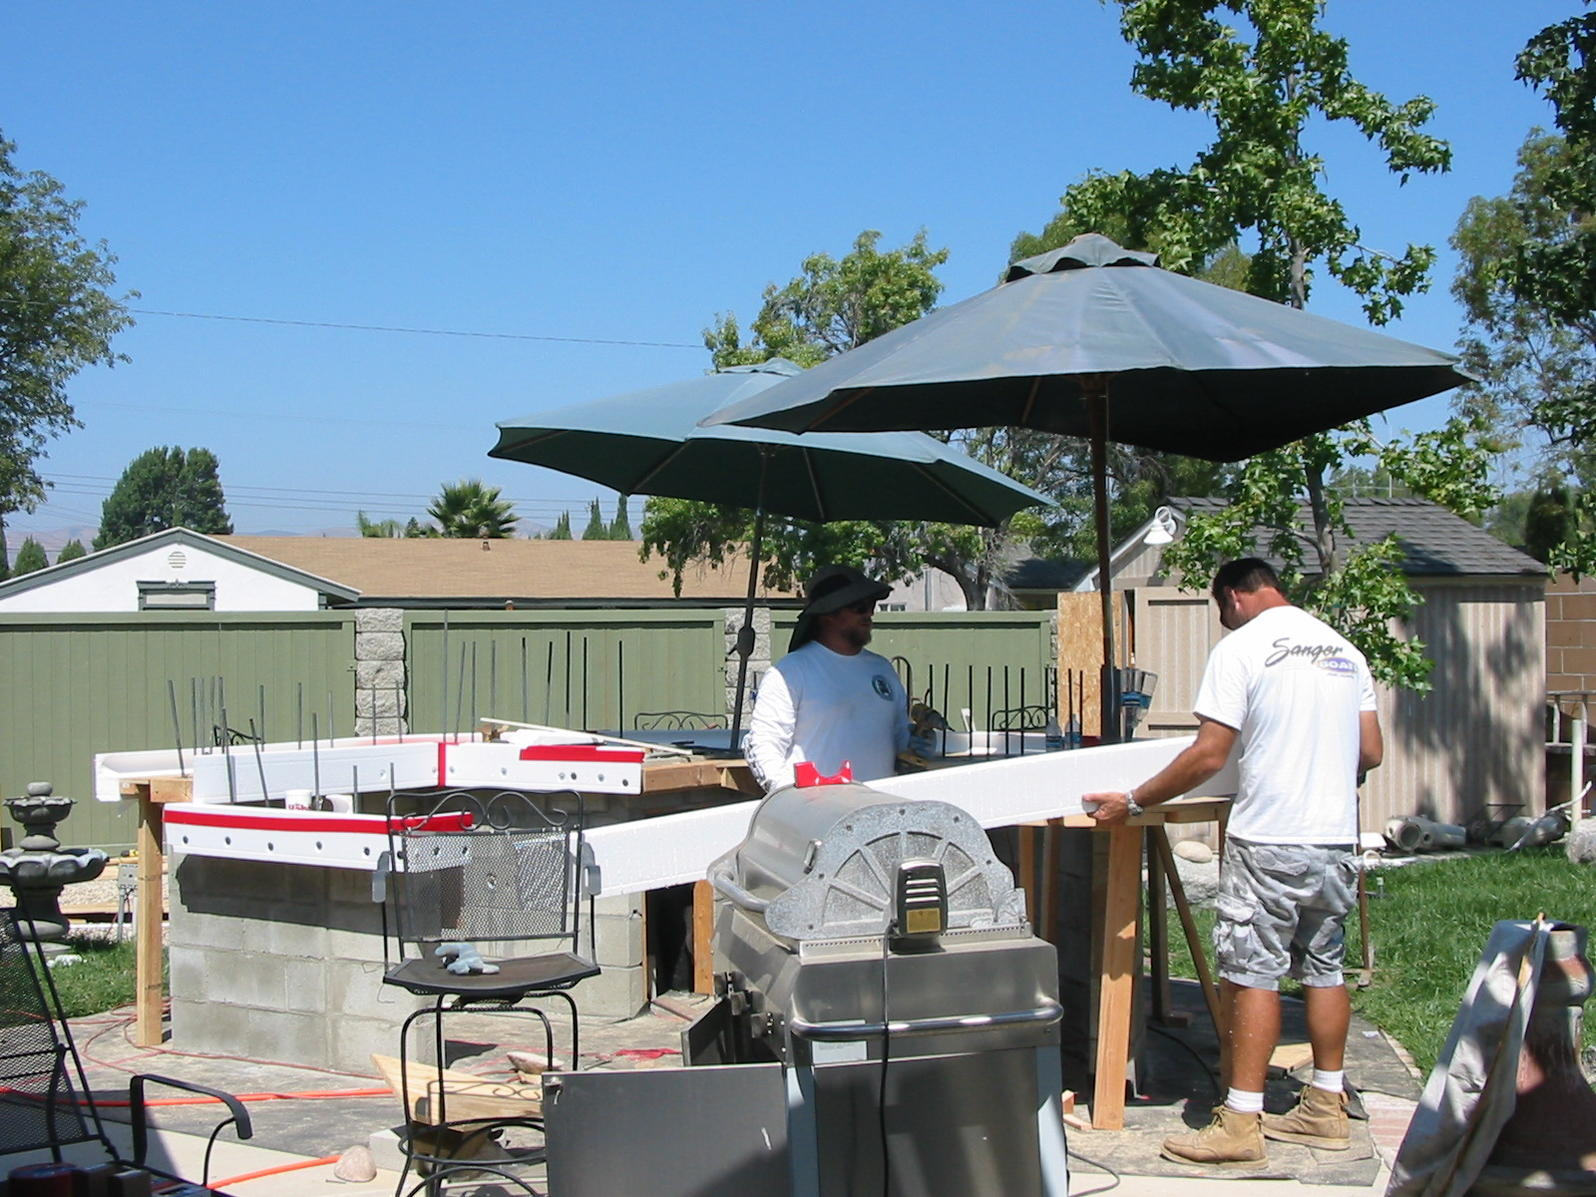 Click image for larger version.�